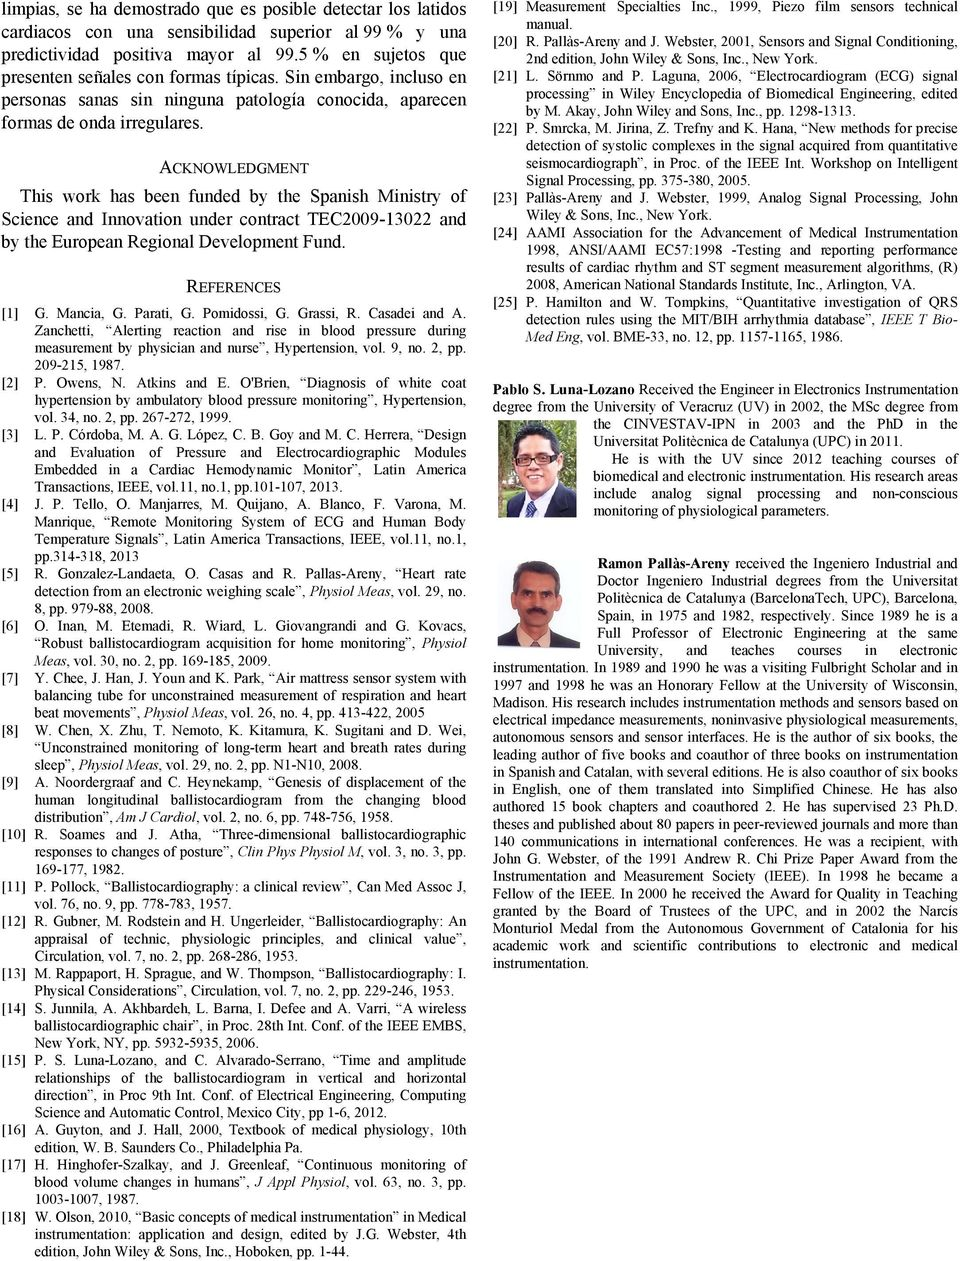 ACKNOWLEDGMENT This work has been funded by the Spanish Ministry of Science and Innovation under contract TEC2009-13022 and by the European Regional Development Fund. REFERENCES [1] G. Mancia, G.